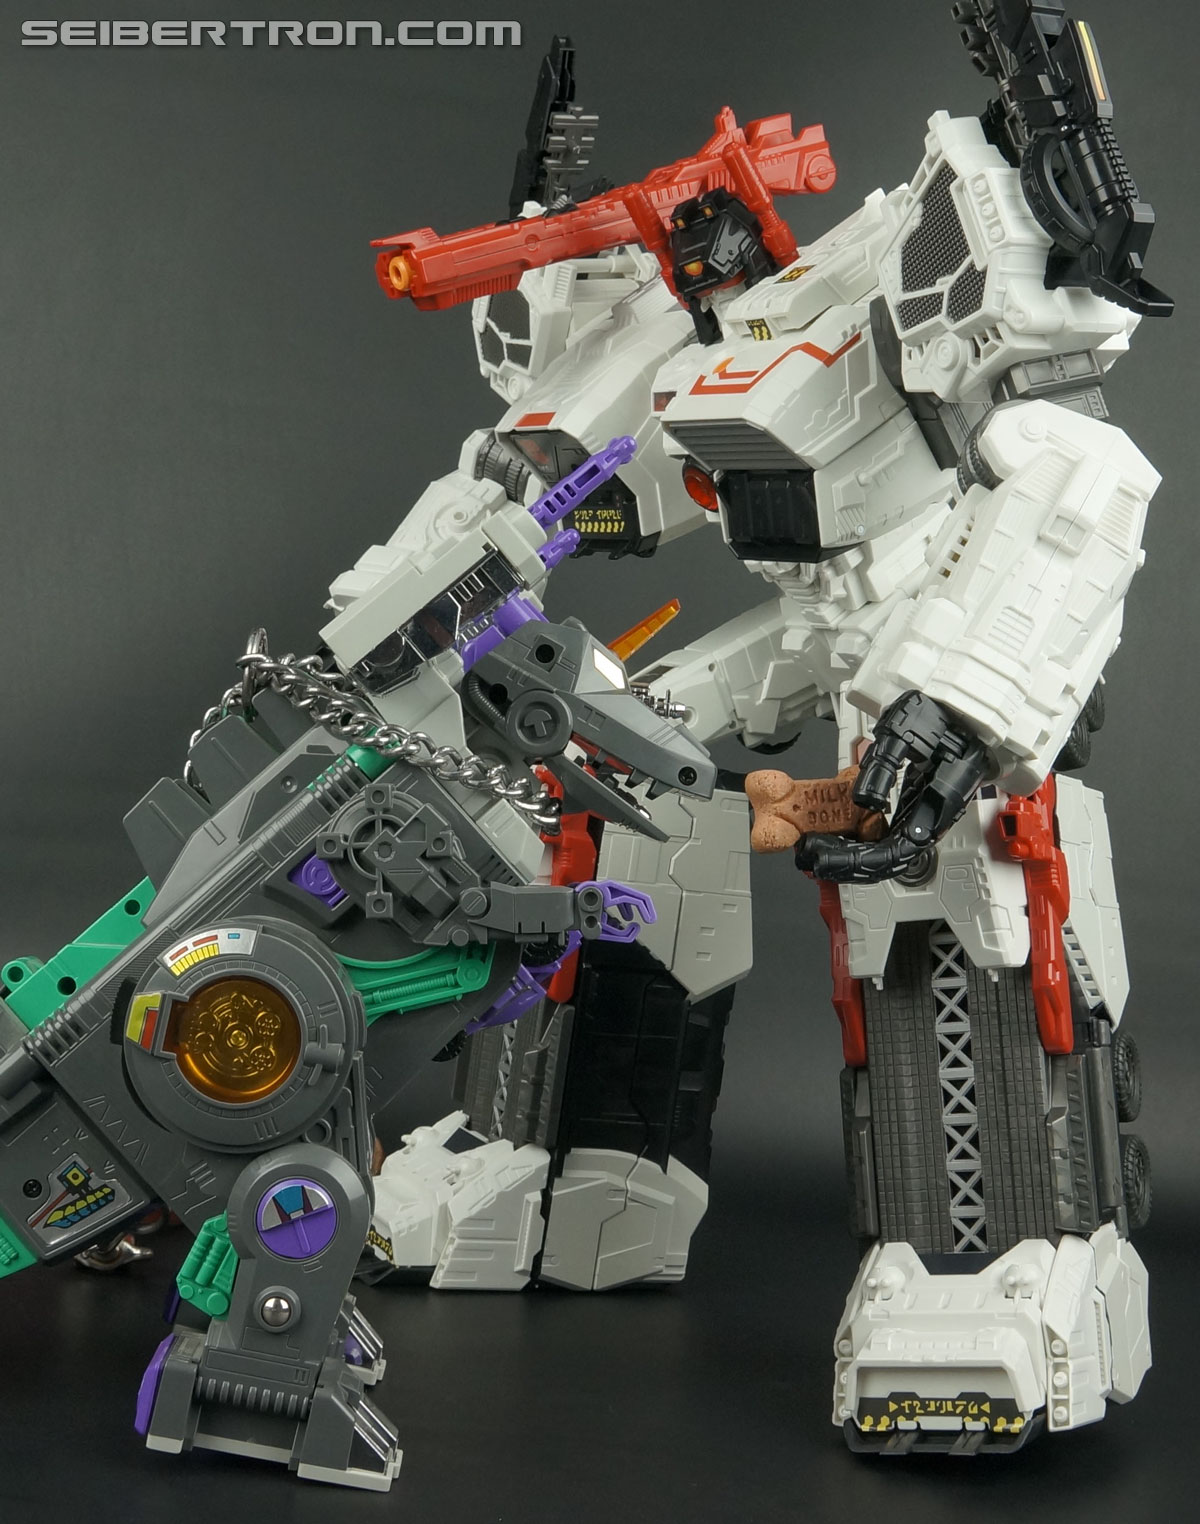 transformers generations metroplex toy gallery image 551 of 552